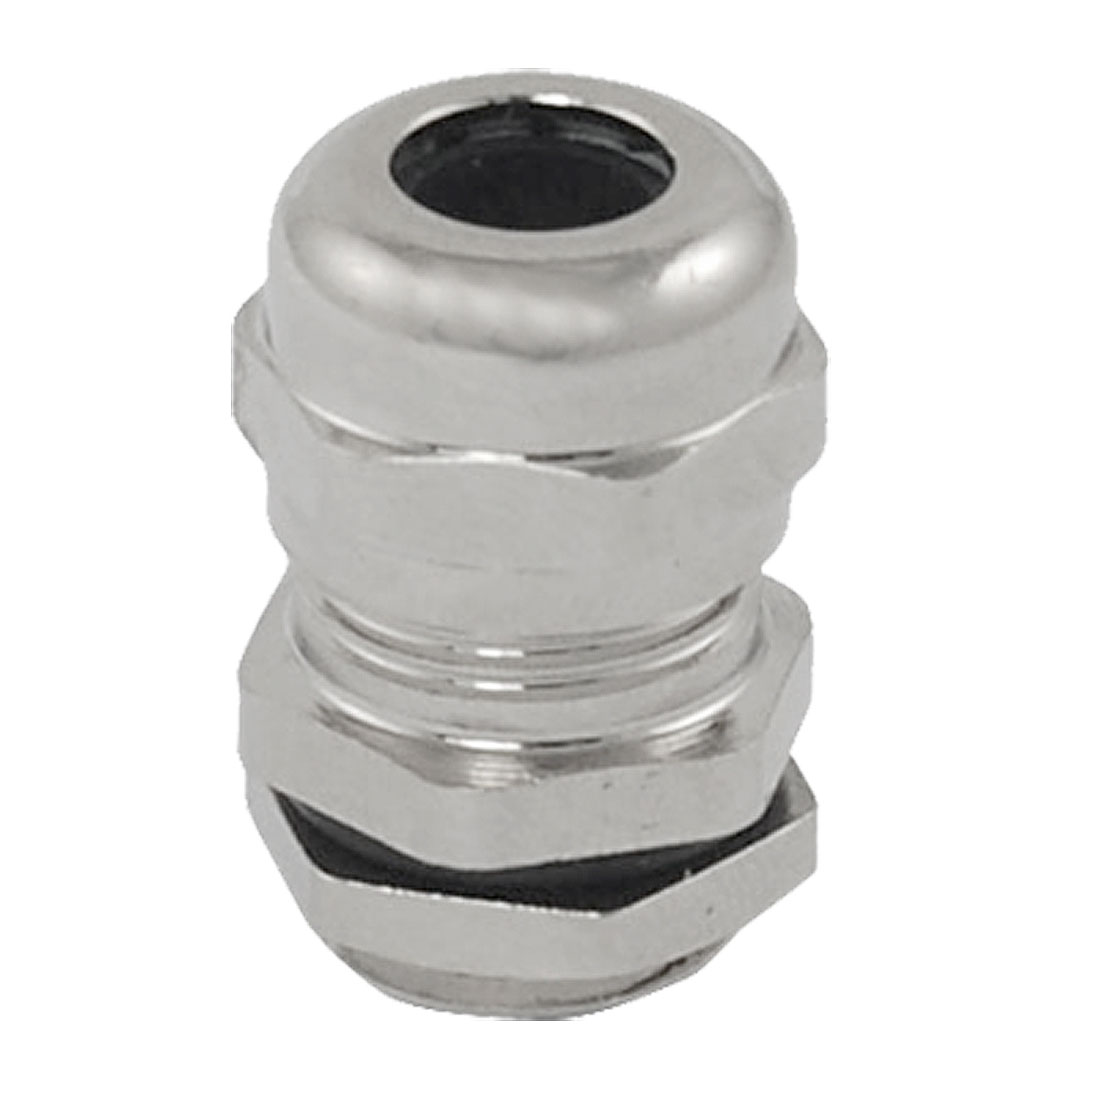 Stainless Steel 3.0-6.5mm M12 Cable Gland Connector with Locknut